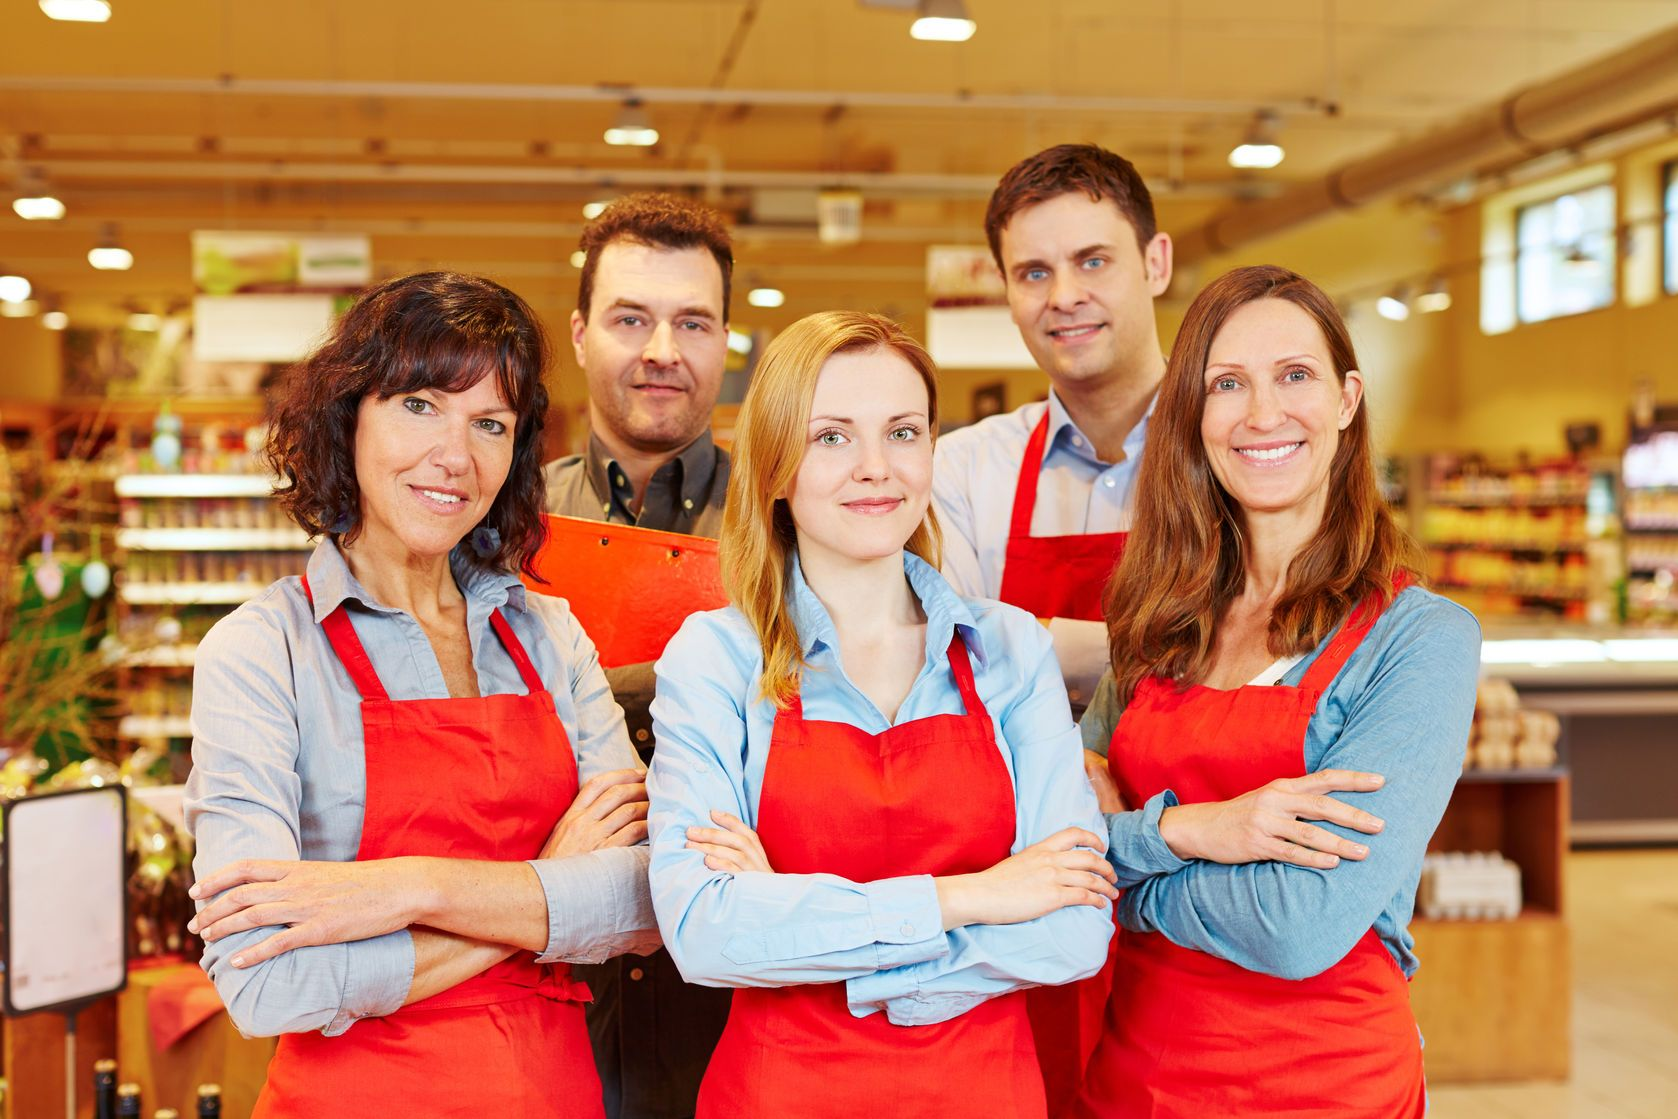 payroll services for small business Payroll Services for Small Business Payroll Services for Small Business Cape Cod Marthas Vineyard